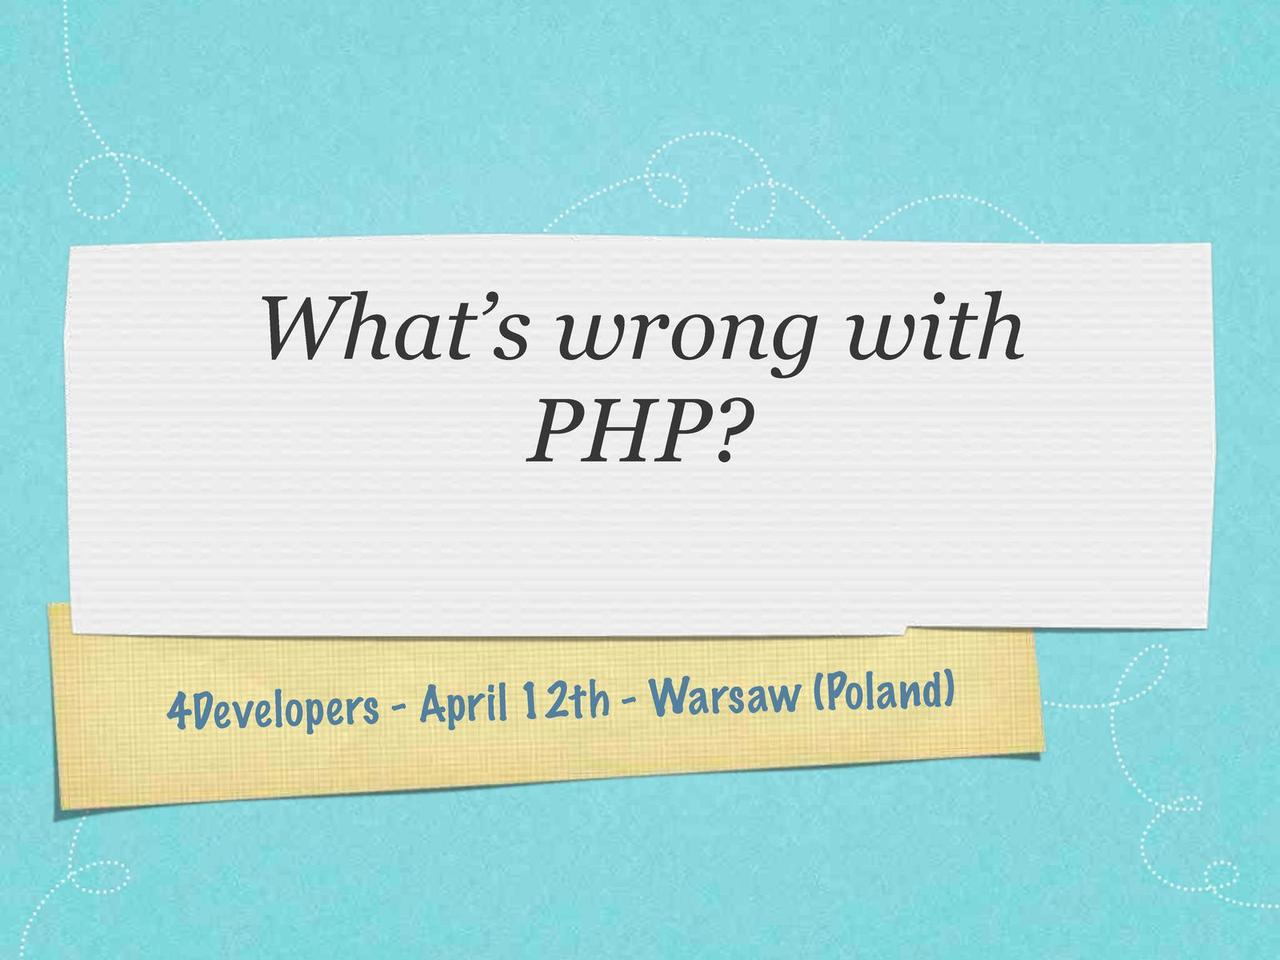 What's wrong with PHP?